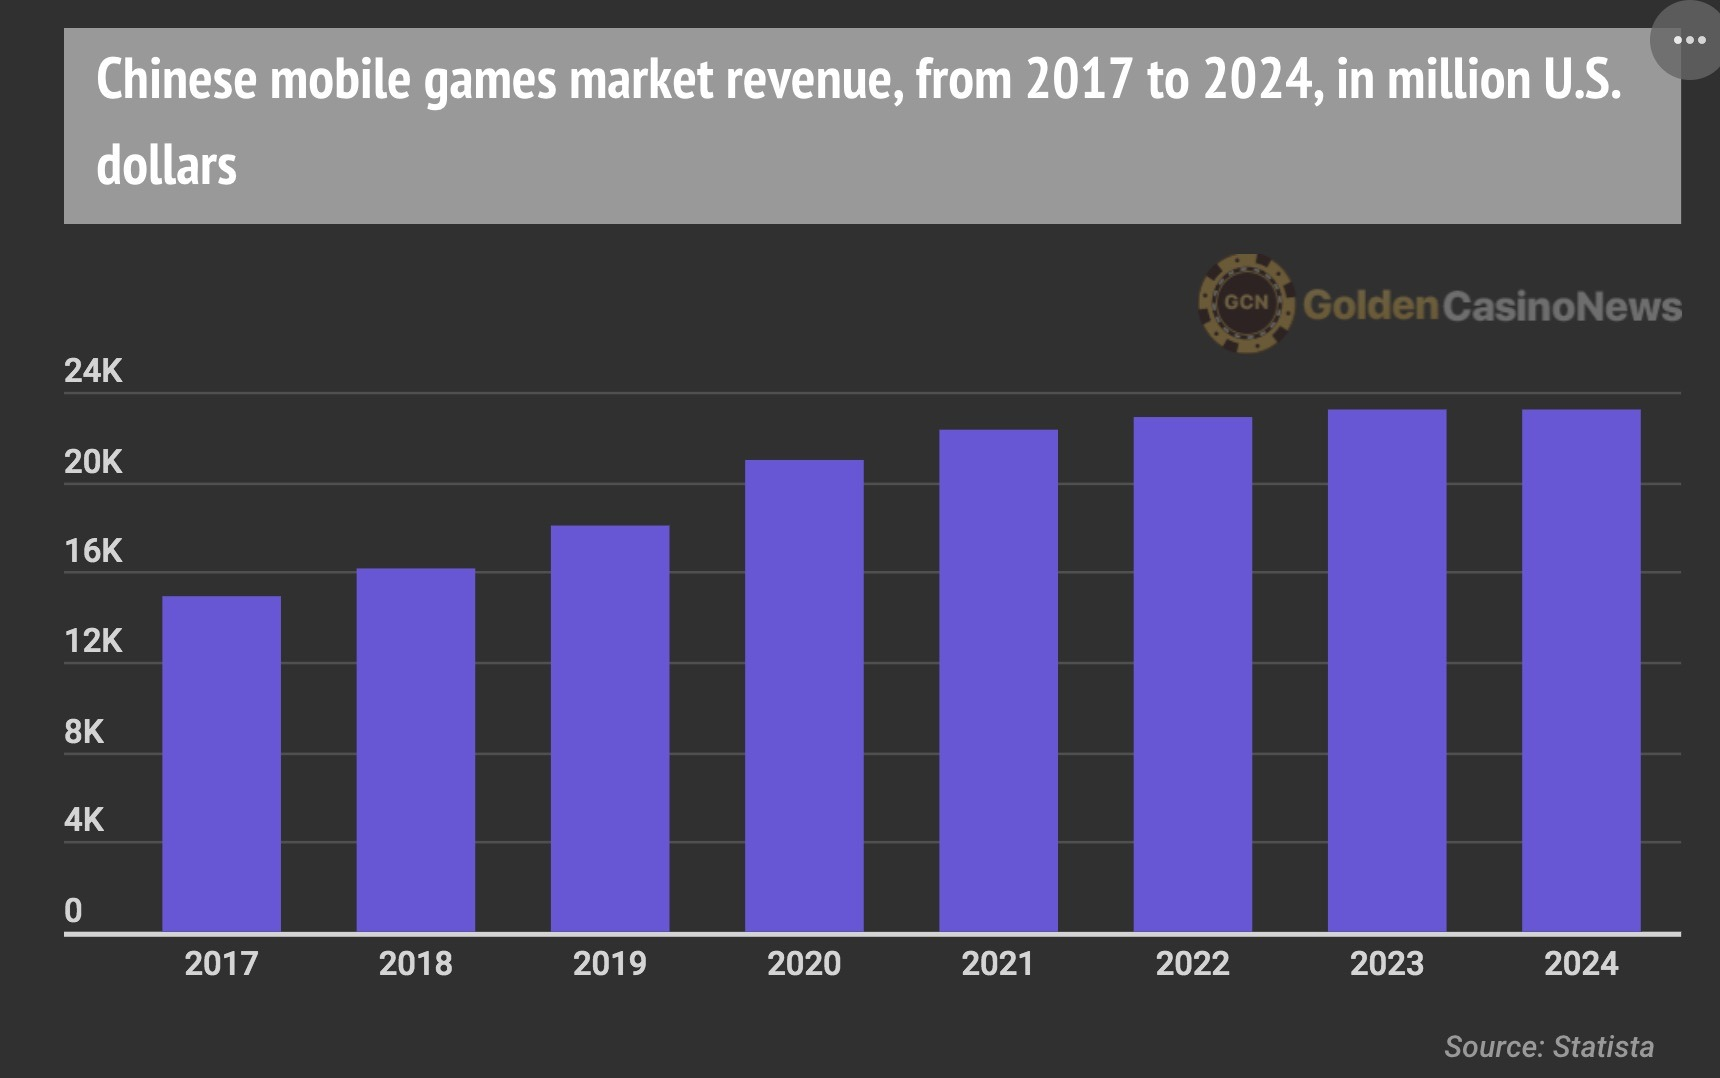 Mobile game revenues to hit $21 billion in China this year